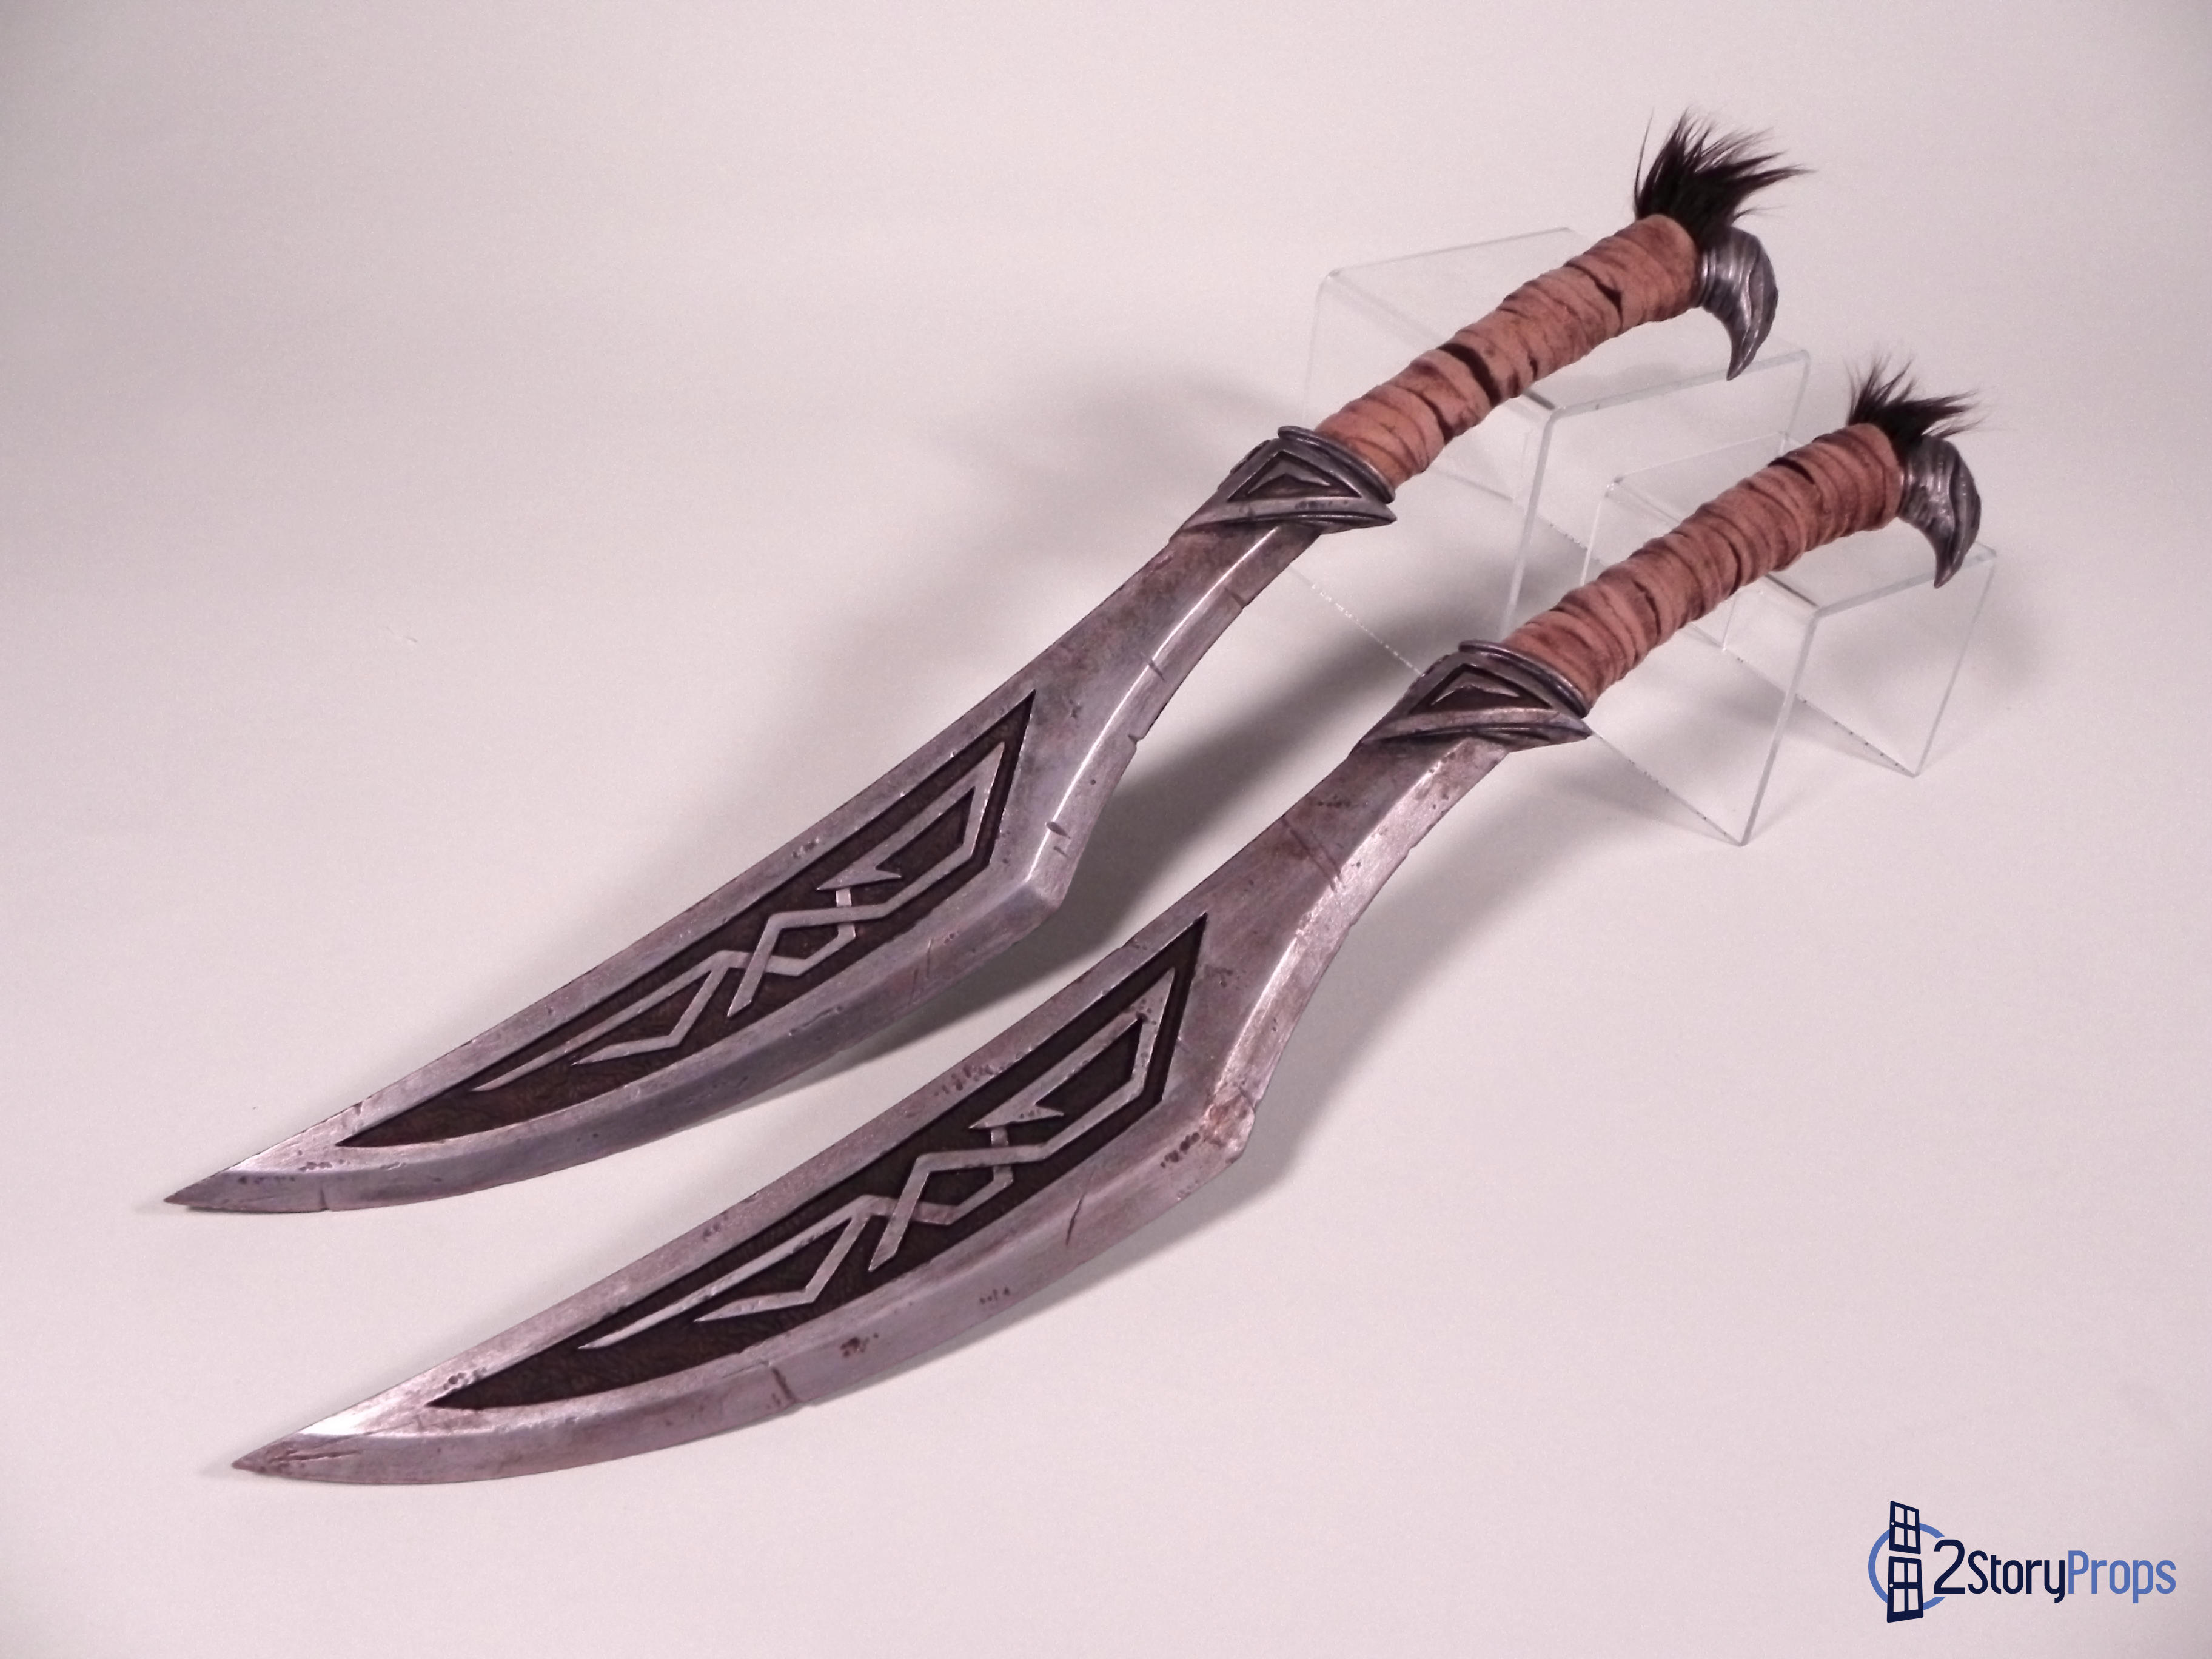 Skyrim nordic dagger time lapse video tested